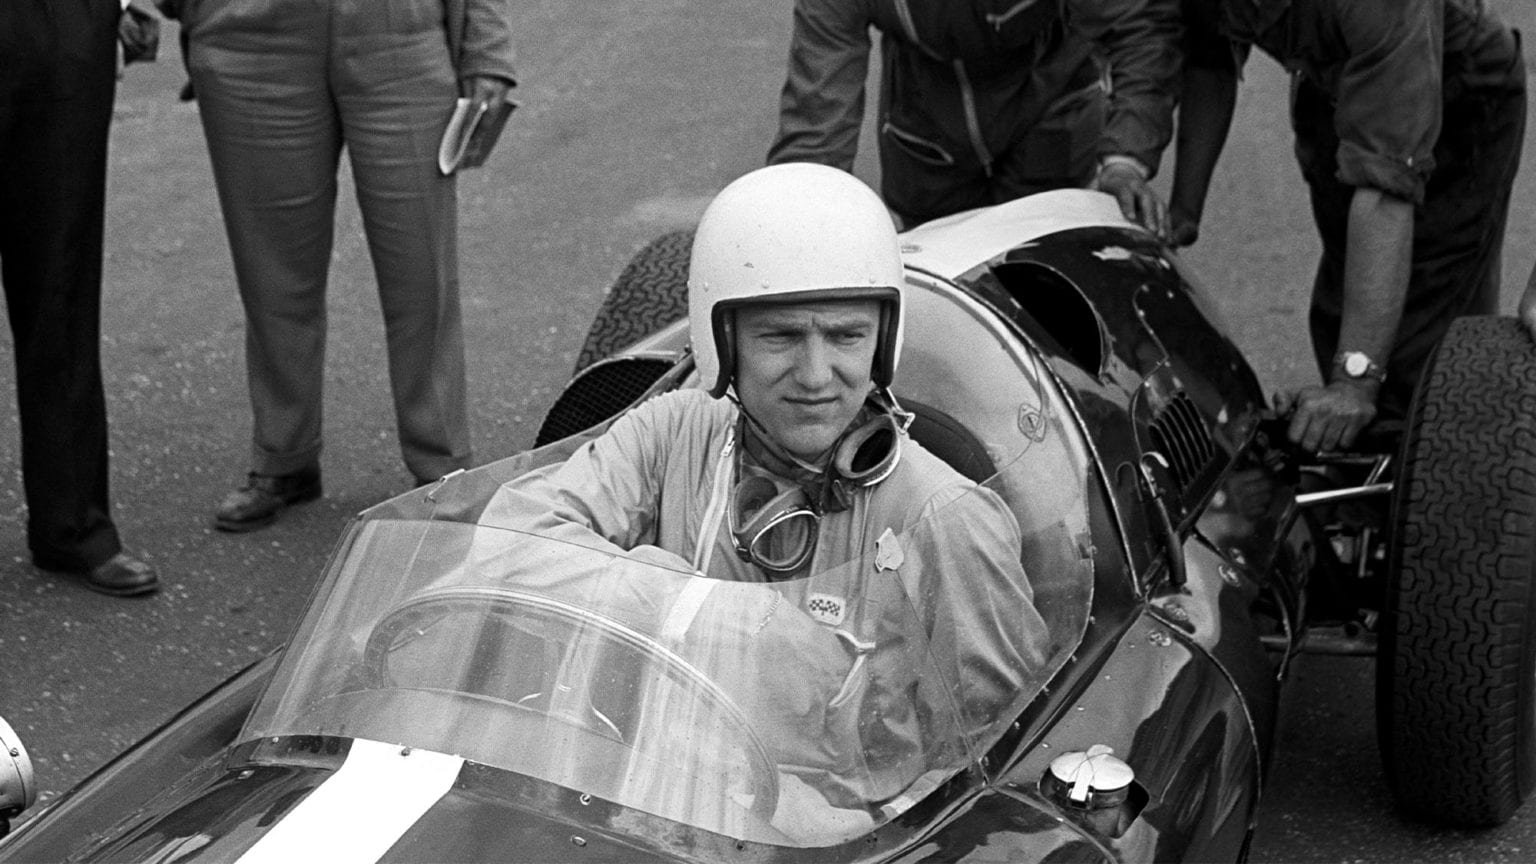 Nécrologie - sports mécaniques (Max Mosley) - Page 7 Green-lead-1536x864